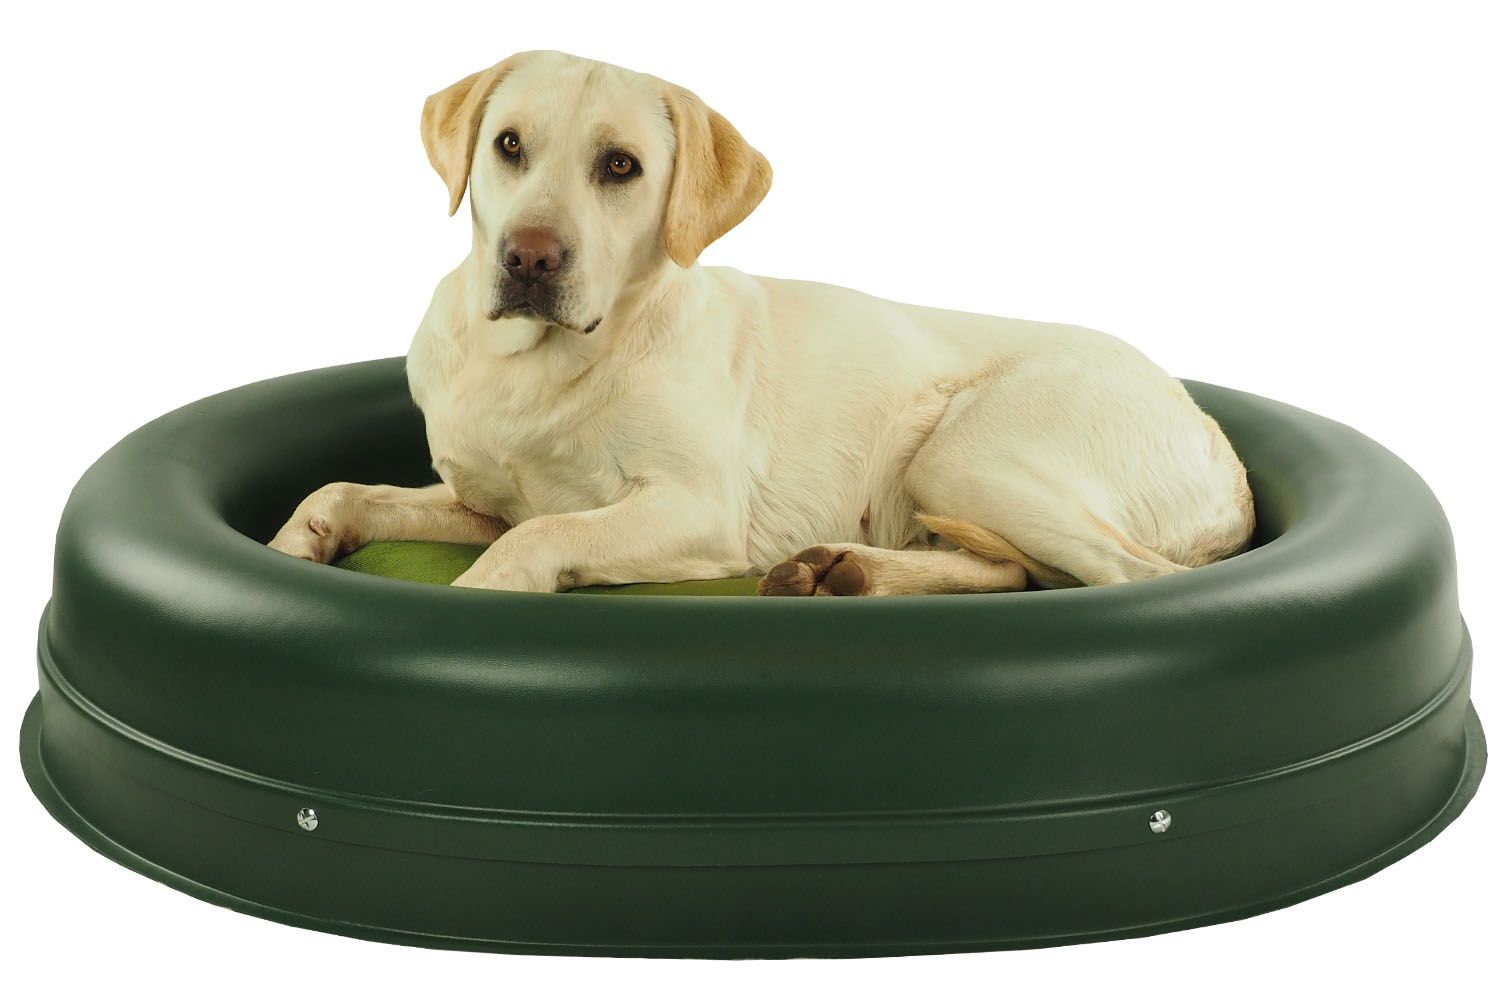 Dog Beds From Tuffies View And Purchase Our Luxury Dog Beds Chew Proof Dog Bed Nest Dog Bed Tough Dog Beds